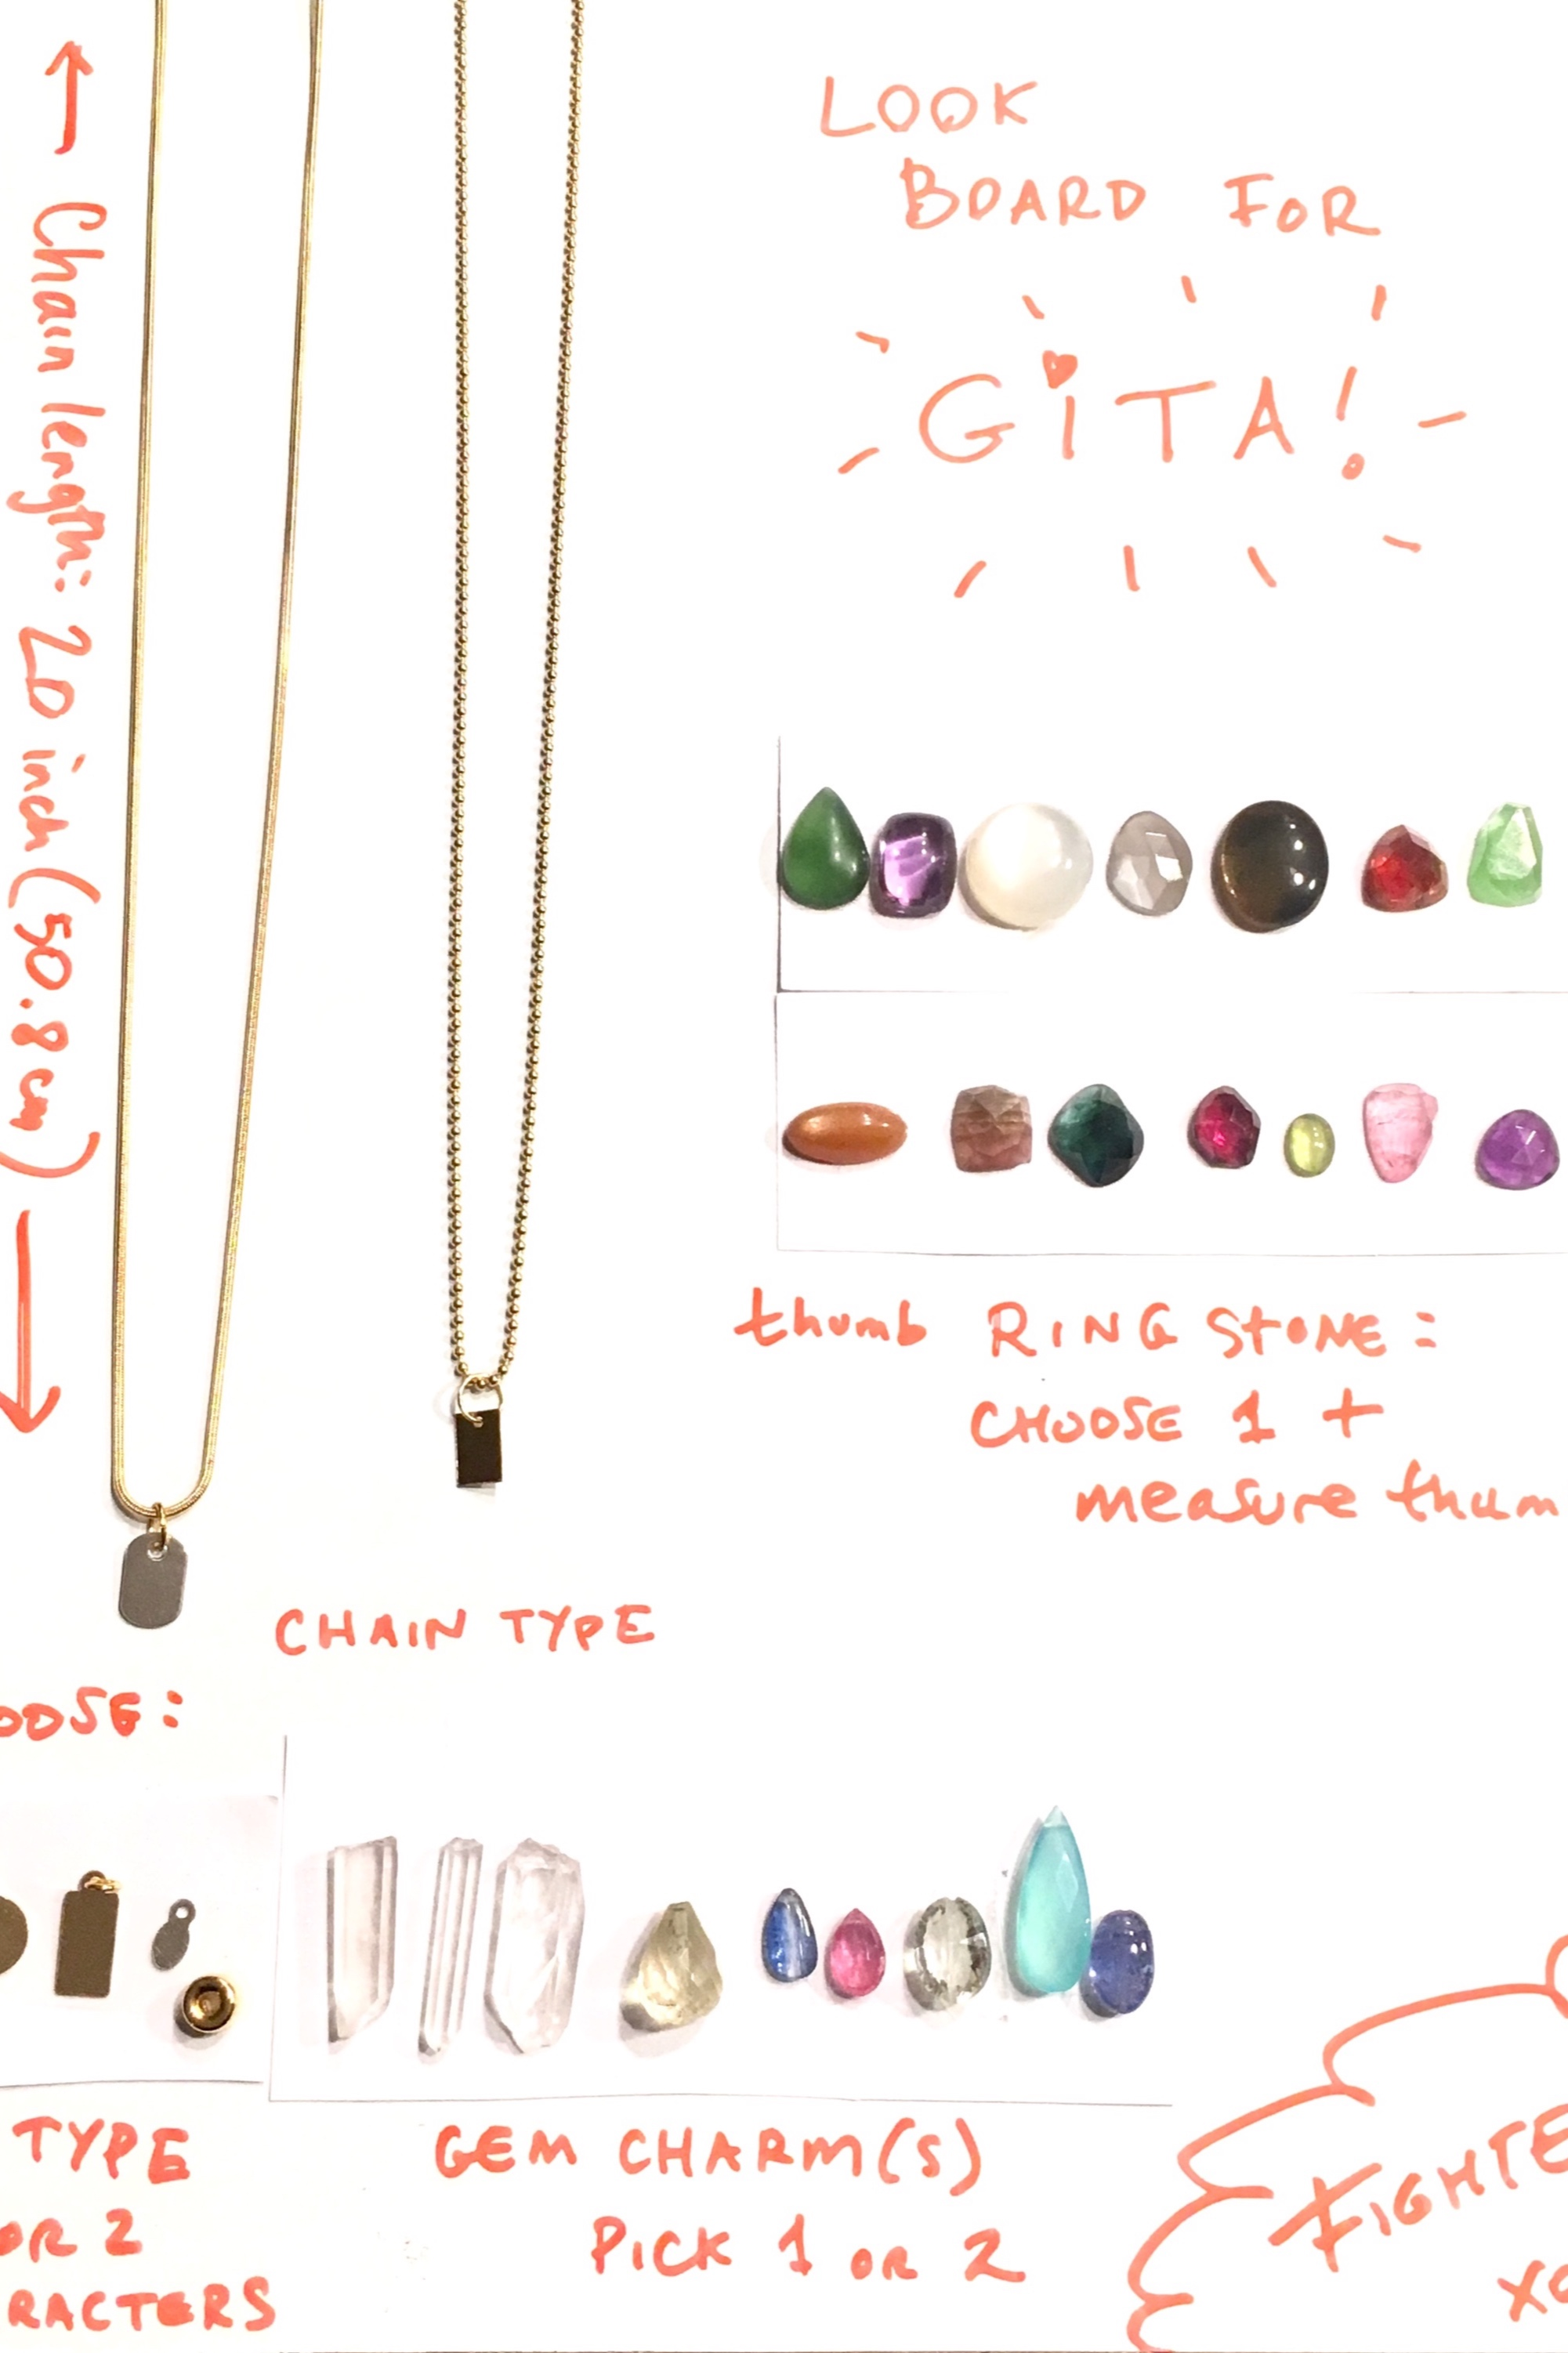 For her upcoming fight, Gita wanted a  ring  to wear to the press conference, and a  necklace  she could wear into the cage and take off easily.  I love collaborating with others,  and sent her a  look board  of stones/samples I thought would look great on her.